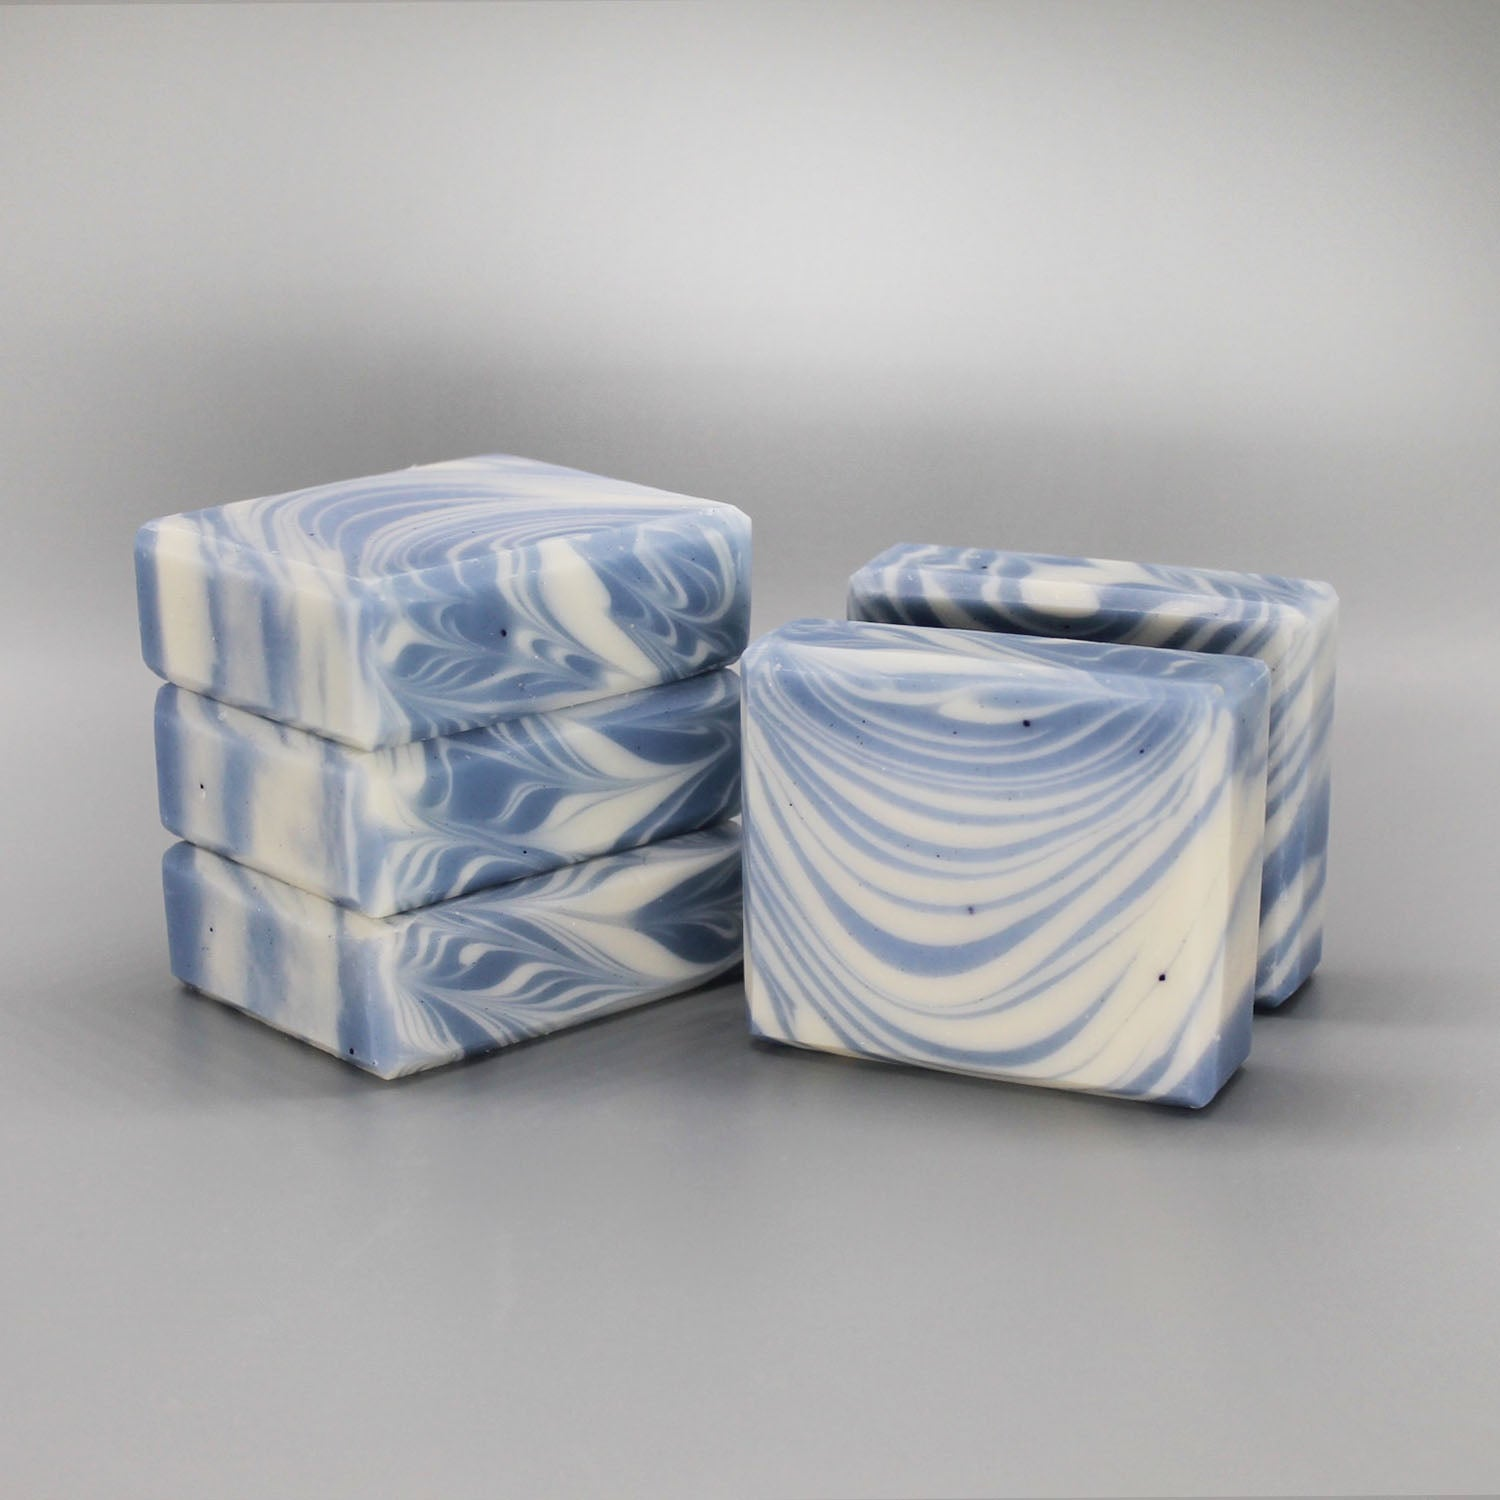 She's a Waterfall- Babassu Oil and Japanese Indigo Soap